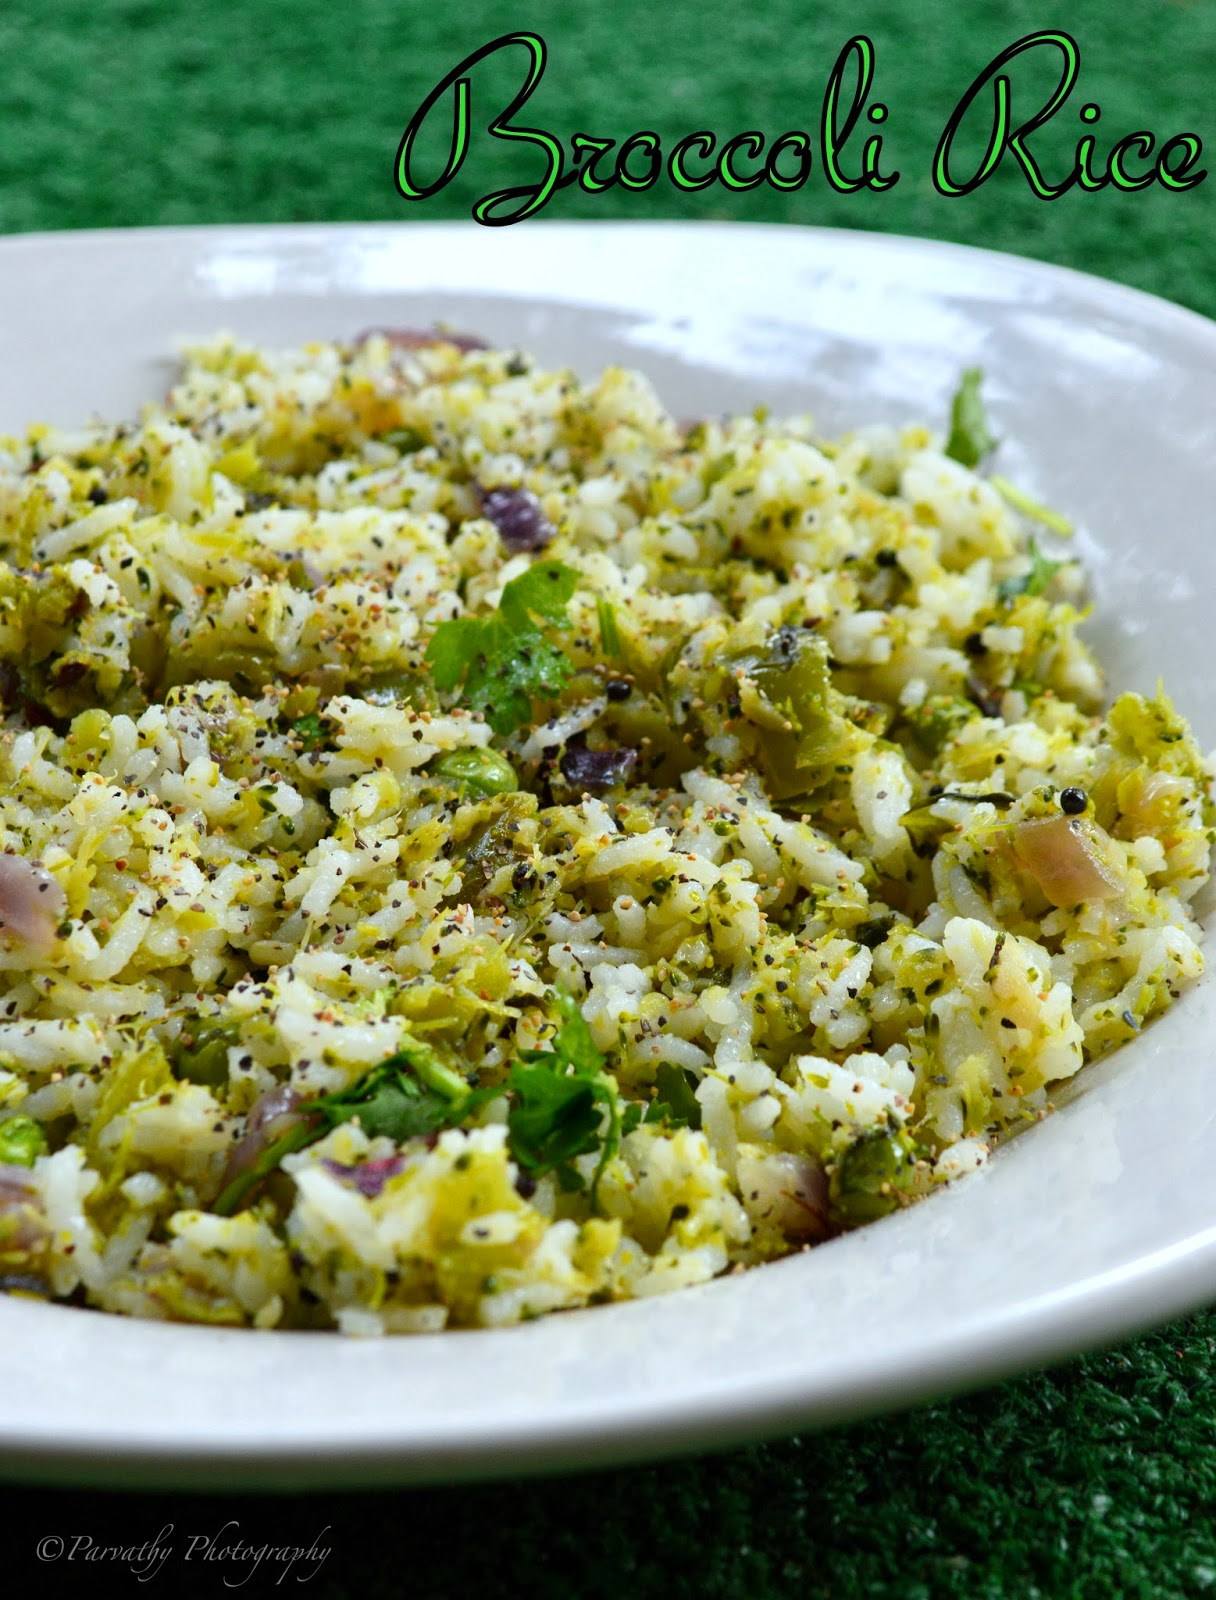 Indian food recipes indian recipes desi food desi recipes not that great and th doesnt like the flavors i dont wanna give up trying again and again when i saw this recipe in a cookery show i got excited forumfinder Choice Image